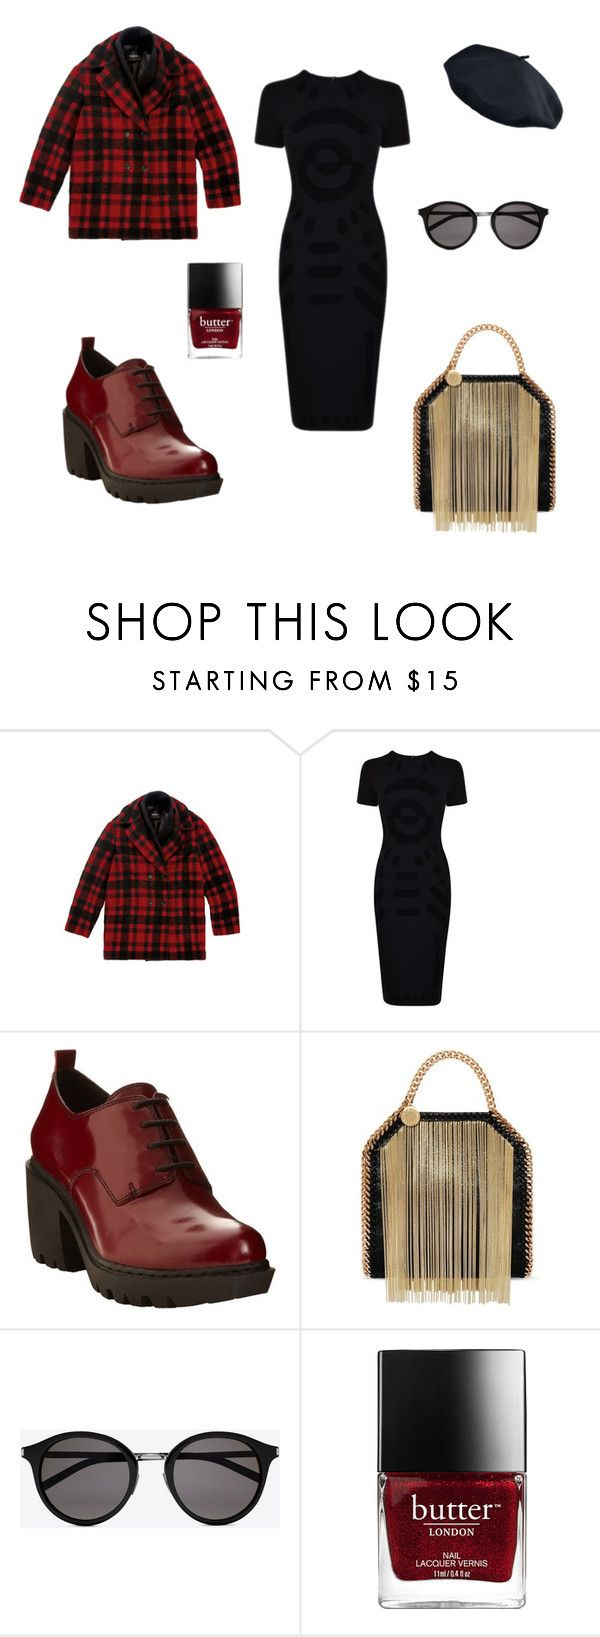 """Untitled #14"" by tracy-mizo ❤ liked on Polyvore featuring McQ by Alexander McQueen, Opening Ceremony, STELLA McCARTNEY and Yves Saint Laurent"